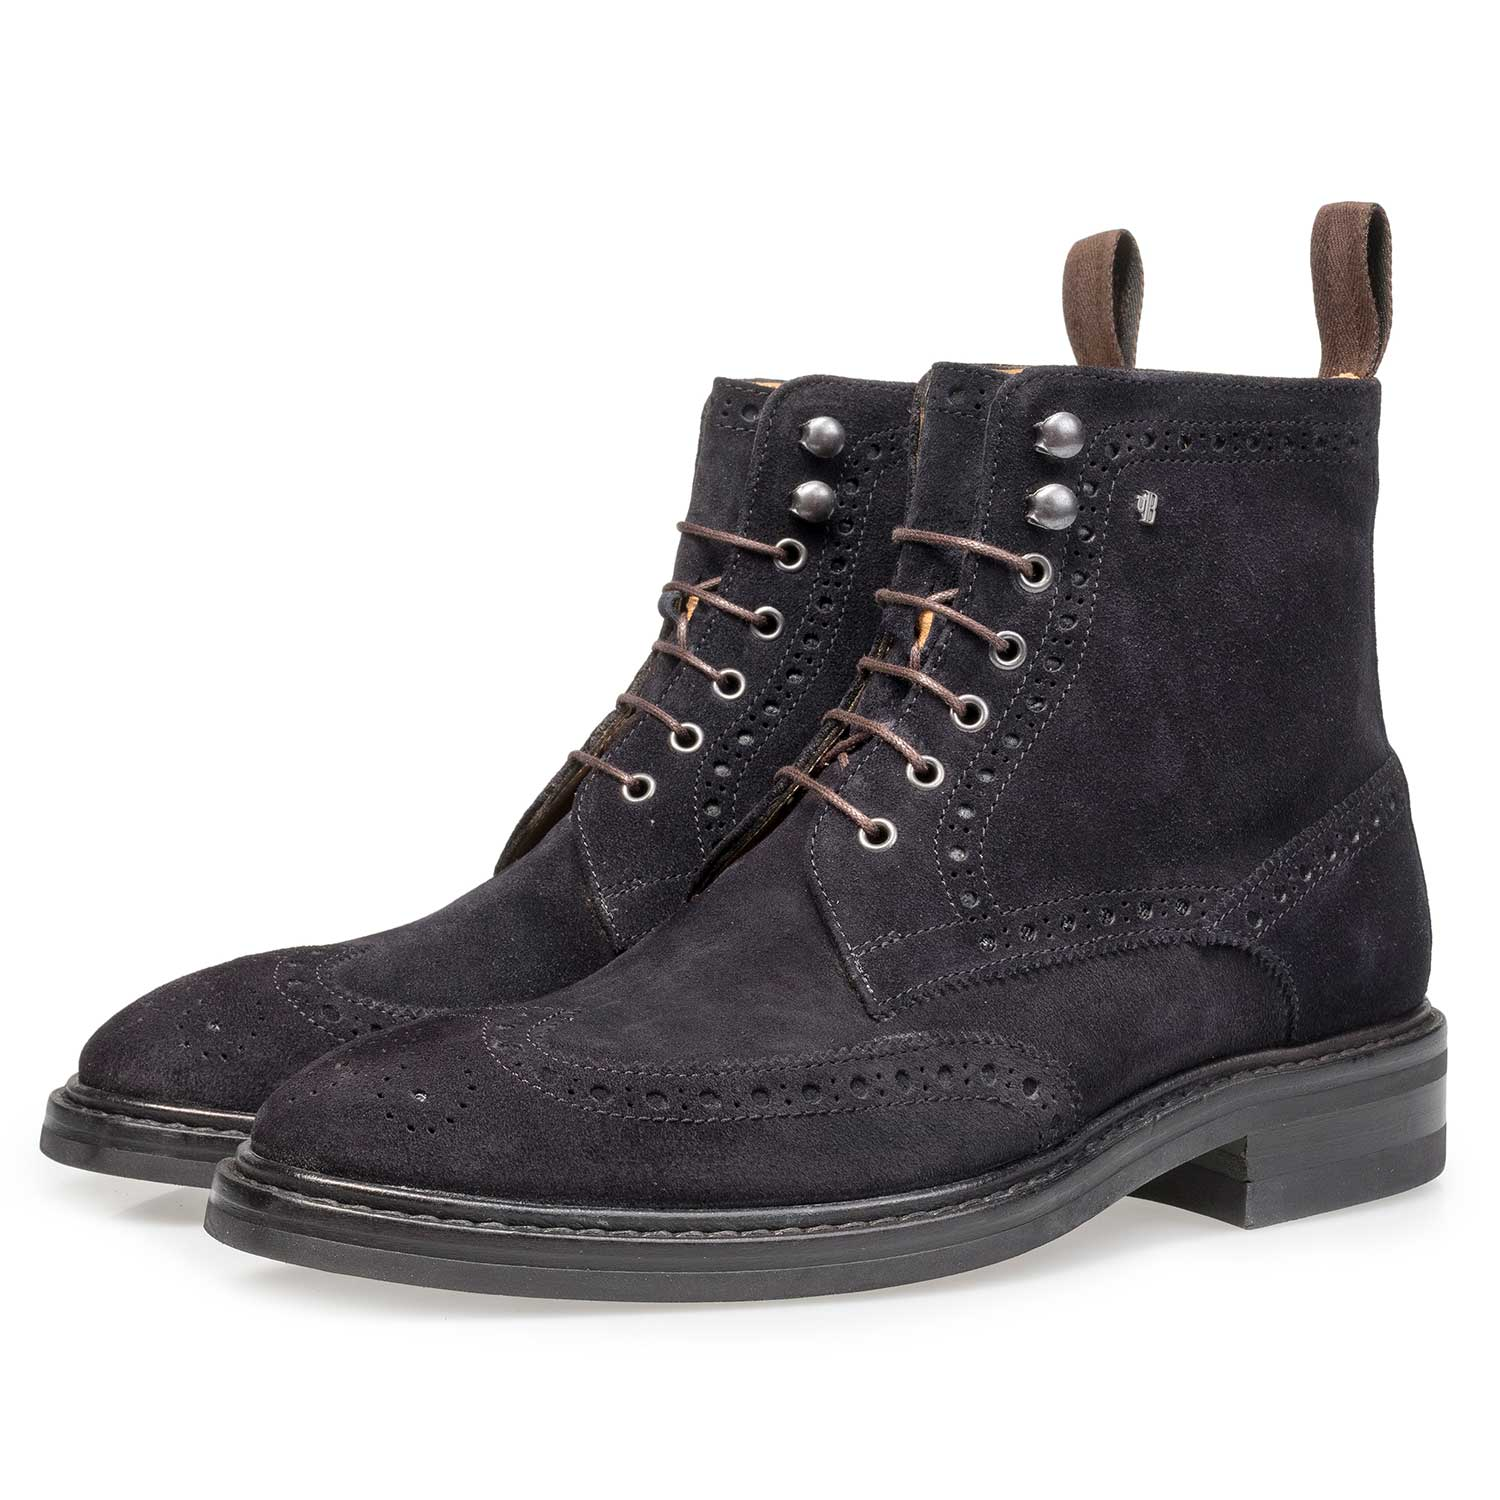 10165/01 - Blue suede leather brogue lace boot